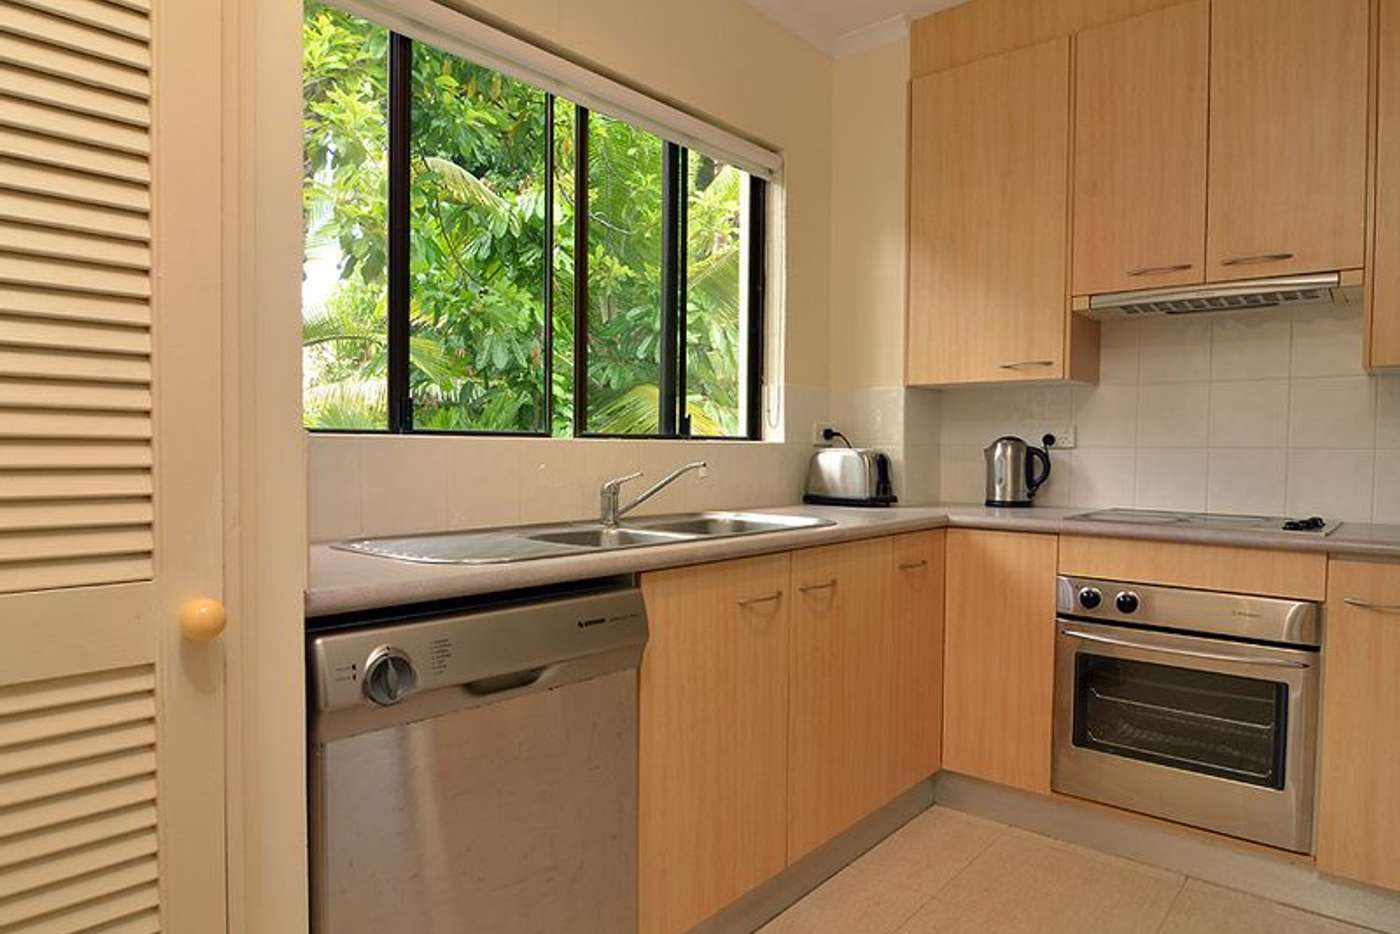 Sixth view of Homely unit listing, 6 Tropical Reef/10 Davidson Street, Port Douglas QLD 4877